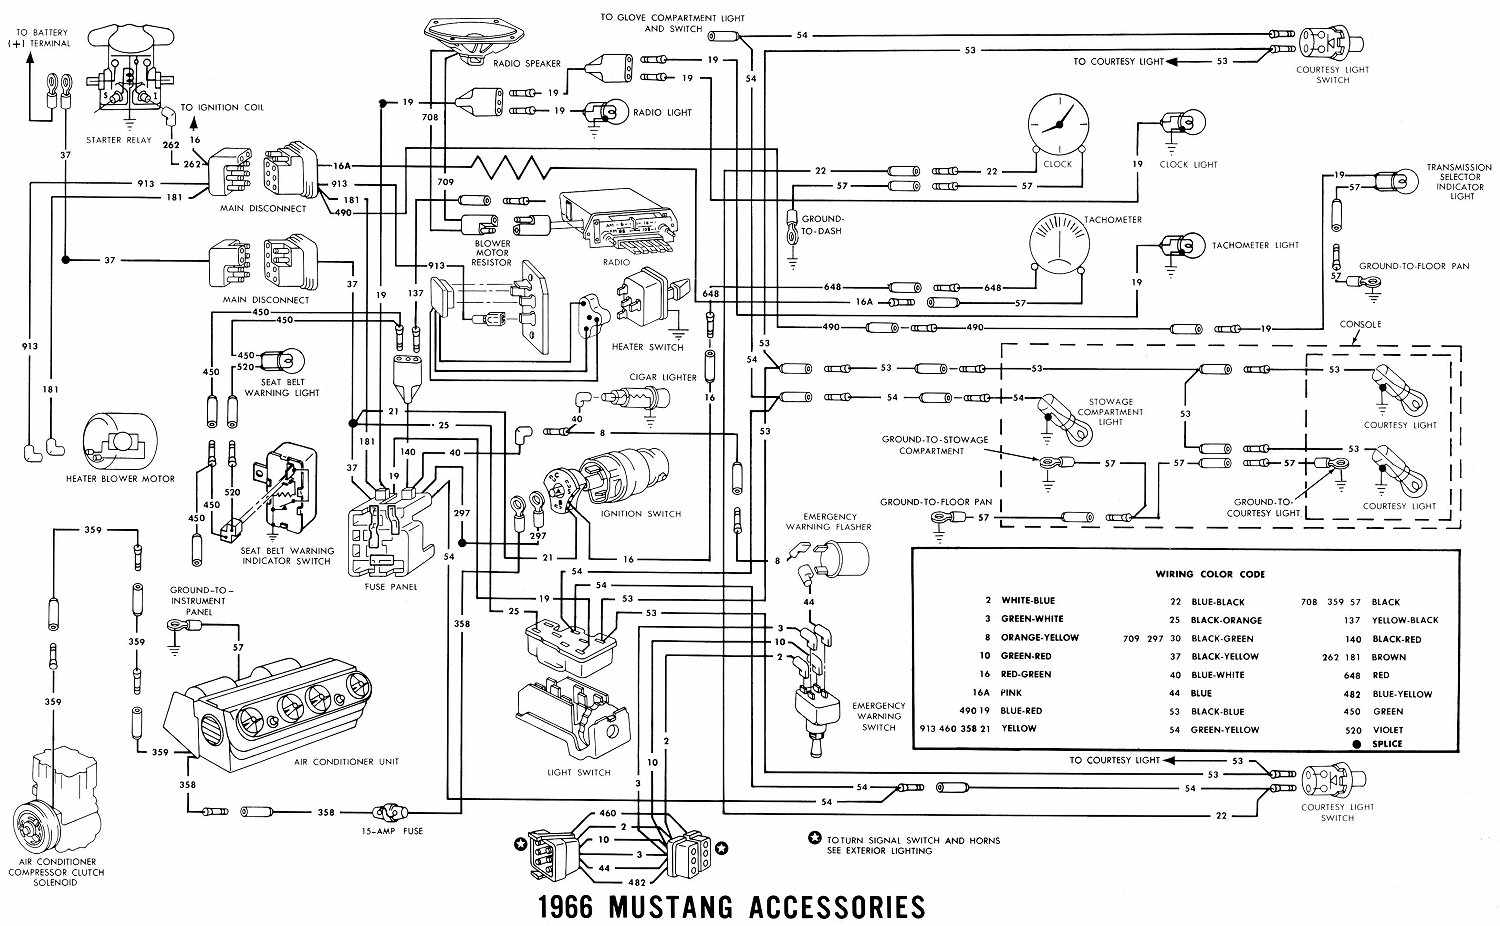 Accessories Electrical Wiring Diagram Of Ford Mustang